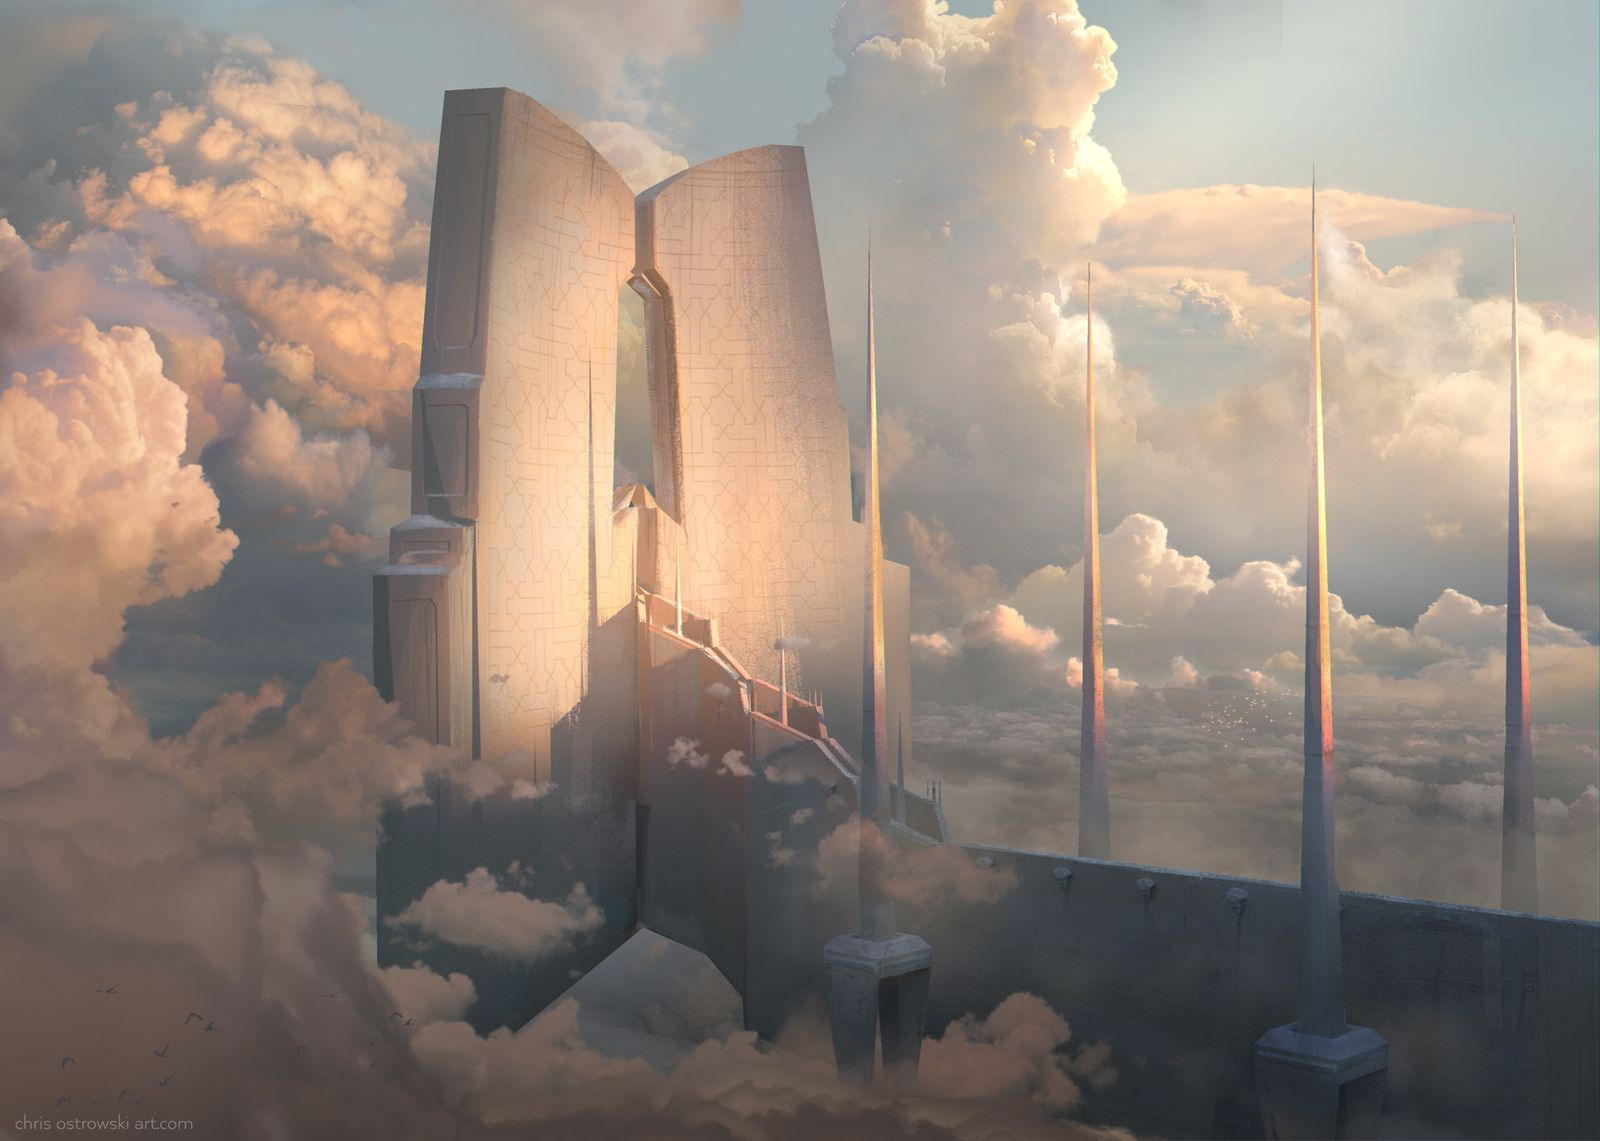 Sky Temple by Chris Ostrowski